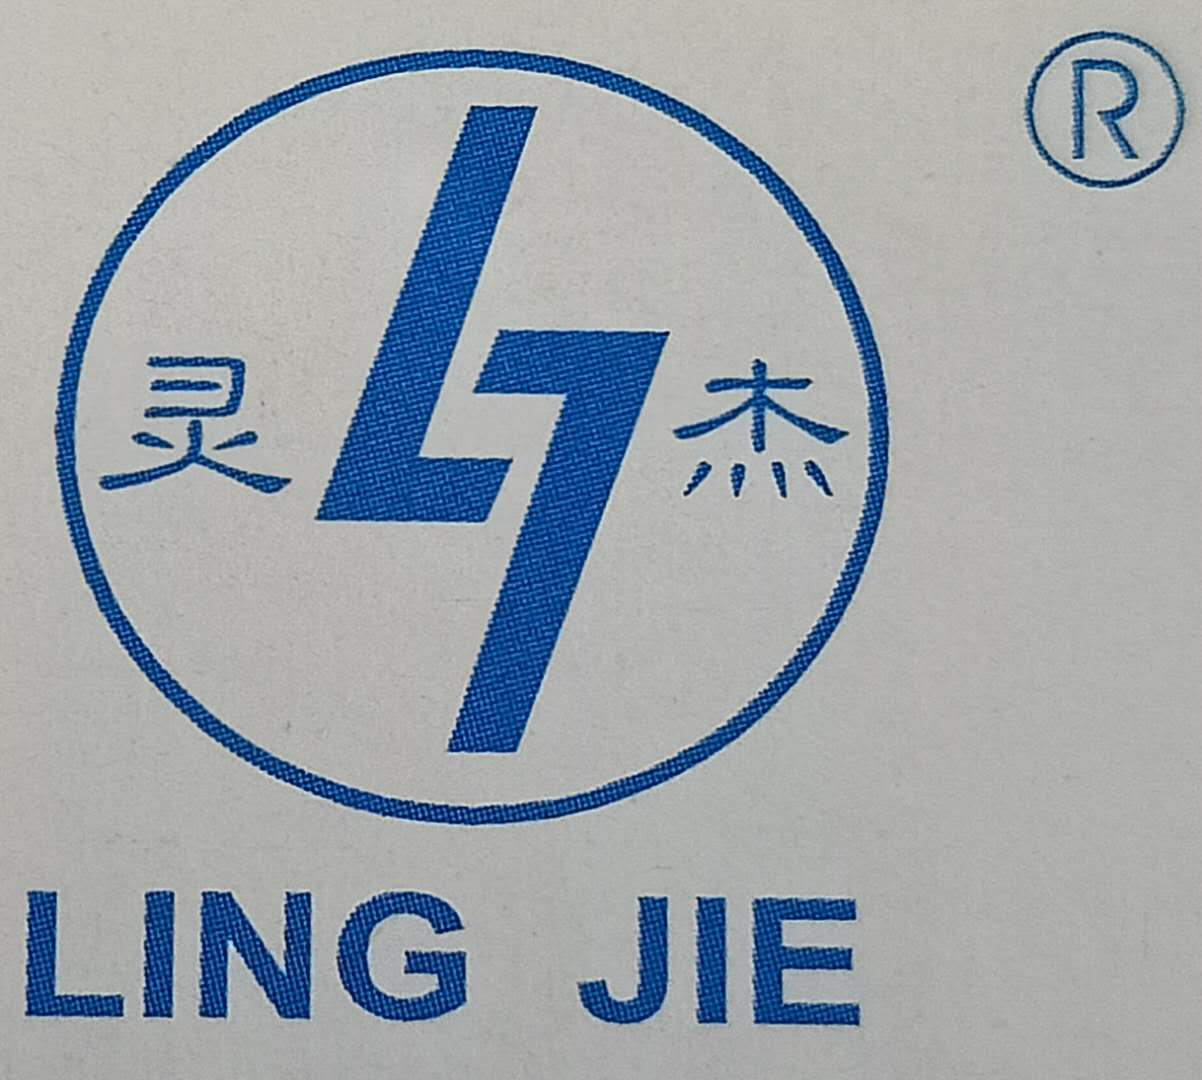 ANHUI LINGJIE CABLE CO.,LTD.